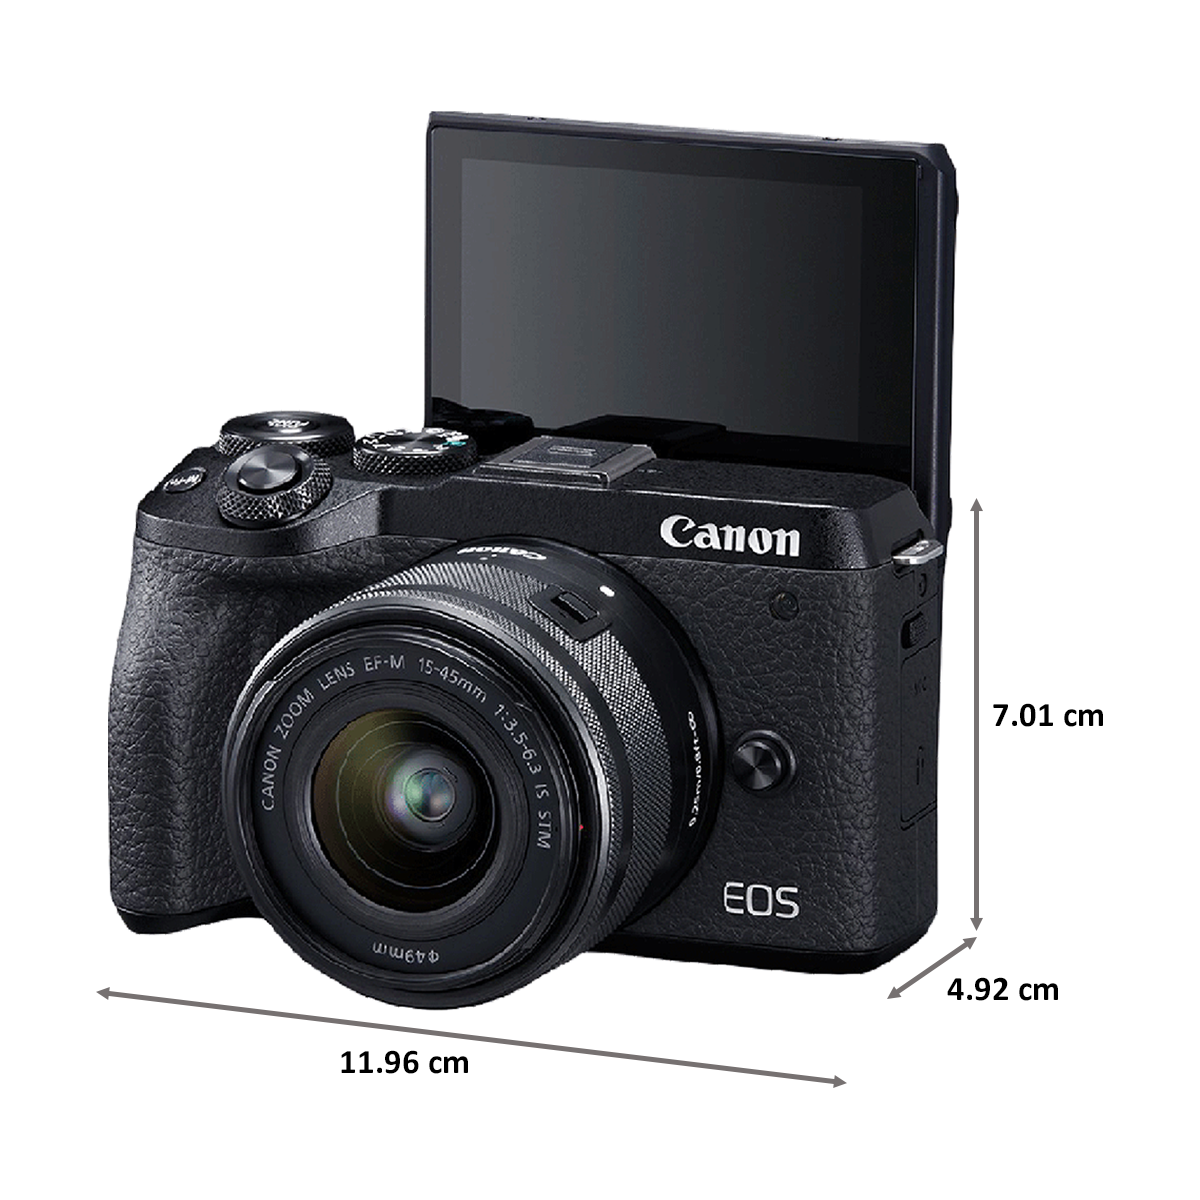 Canon 32.5 MP Mirrorless Camera Body with 15 - 45 mm Lens (EOS M6 Mark II, Black)_2